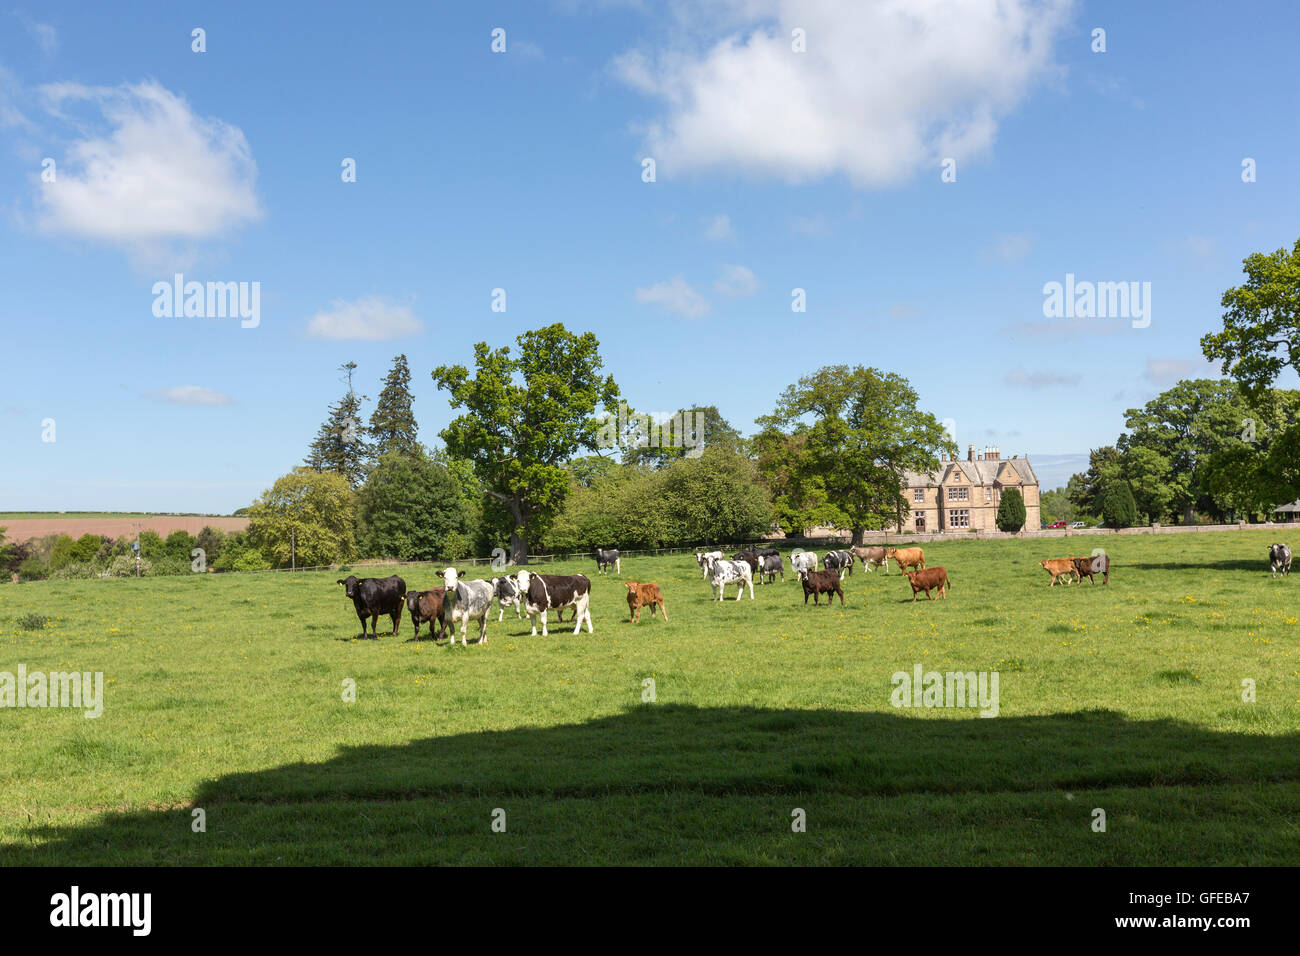 Farm and cows in Tweed Valley,  UK - Stock Image